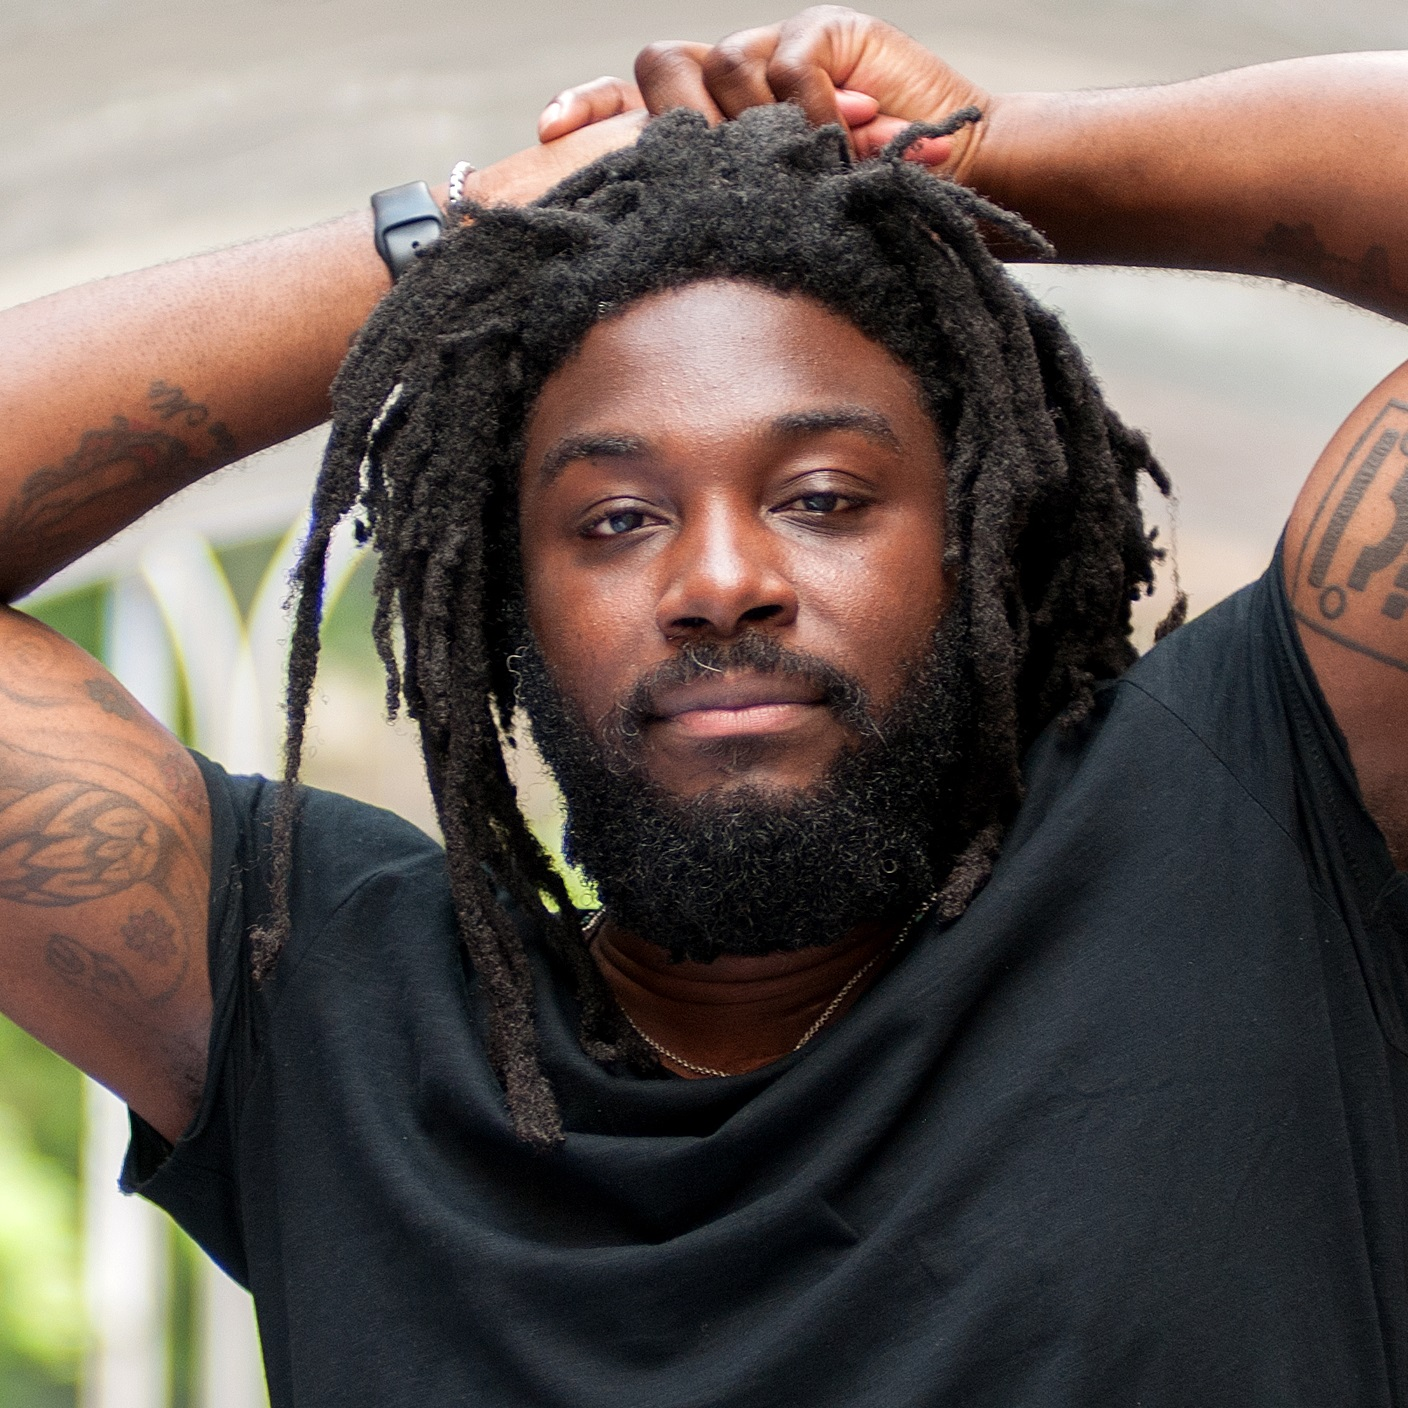 Jason Reynolds is an Edgar Award Young Adult winner, New York Times bestselling author, a Newbery Award Honoree, a Printz Award Honoree, National Book Award Honoree, a Kirkus Award winner, a two time Walter Dean Myers Award winner, an NAACP Image Award Winner and the recipient of multiple Coretta Scott King honours. The American Booksellers Association's 2017 spokesperson for Indies First, his many books include  Long Way Down ,  Boy in the Black Suit  and the  Track  series.